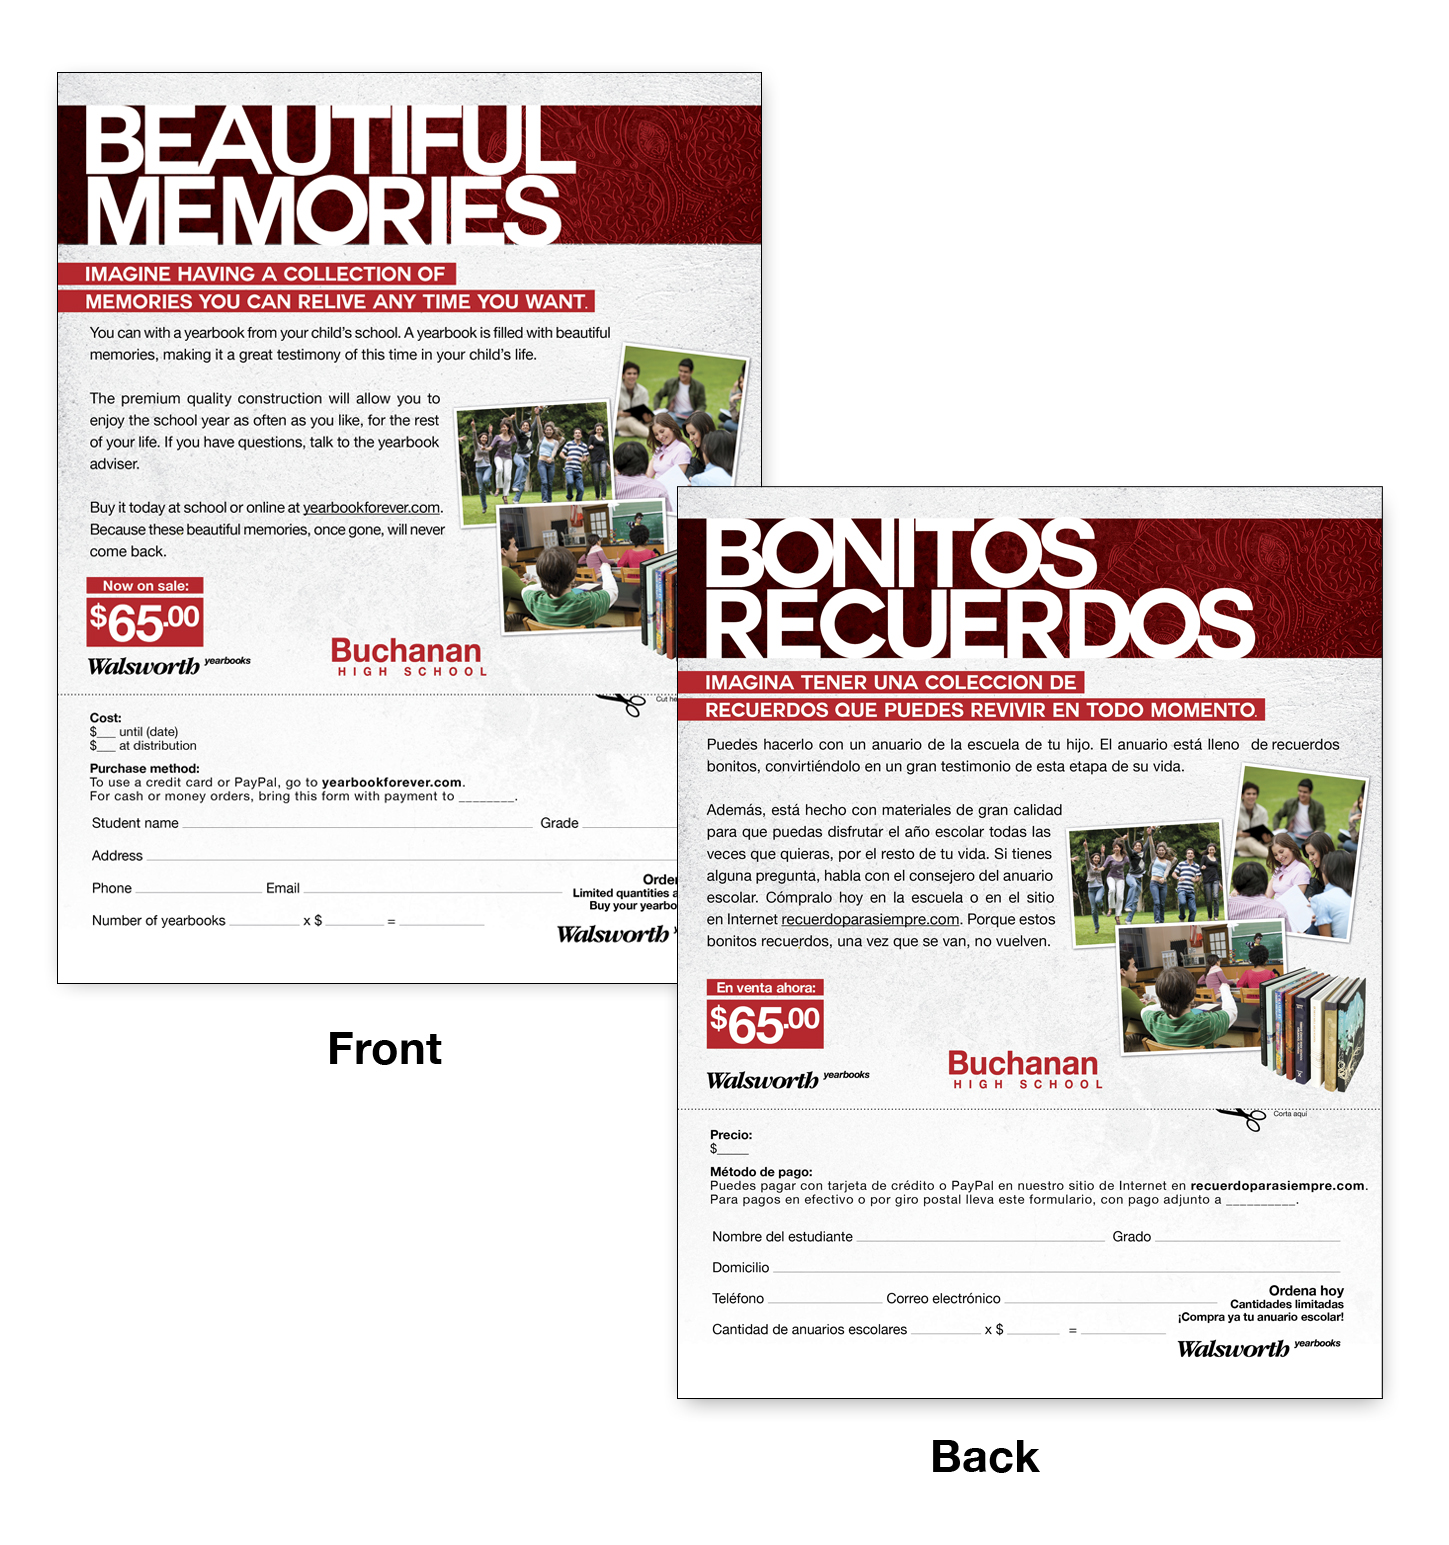 About Accent Marketing Latino Marketing Flier With Order Form Example